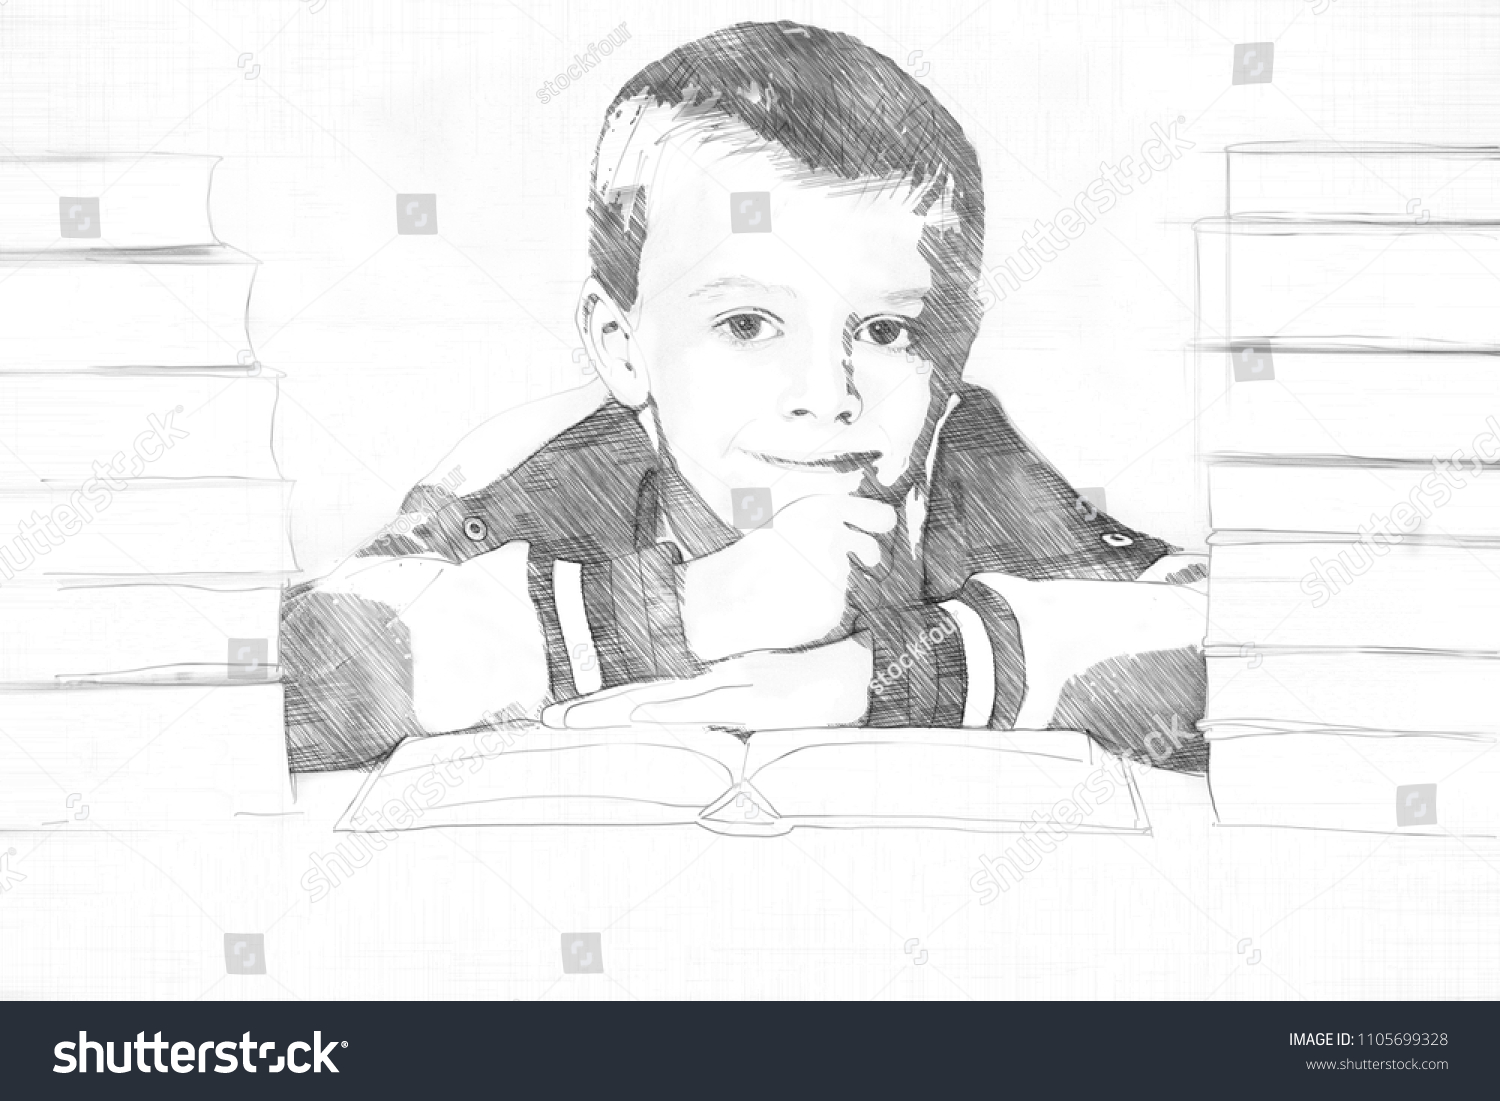 Pencil sketch of a little boy in school flanked by two piles of textbooks putting on